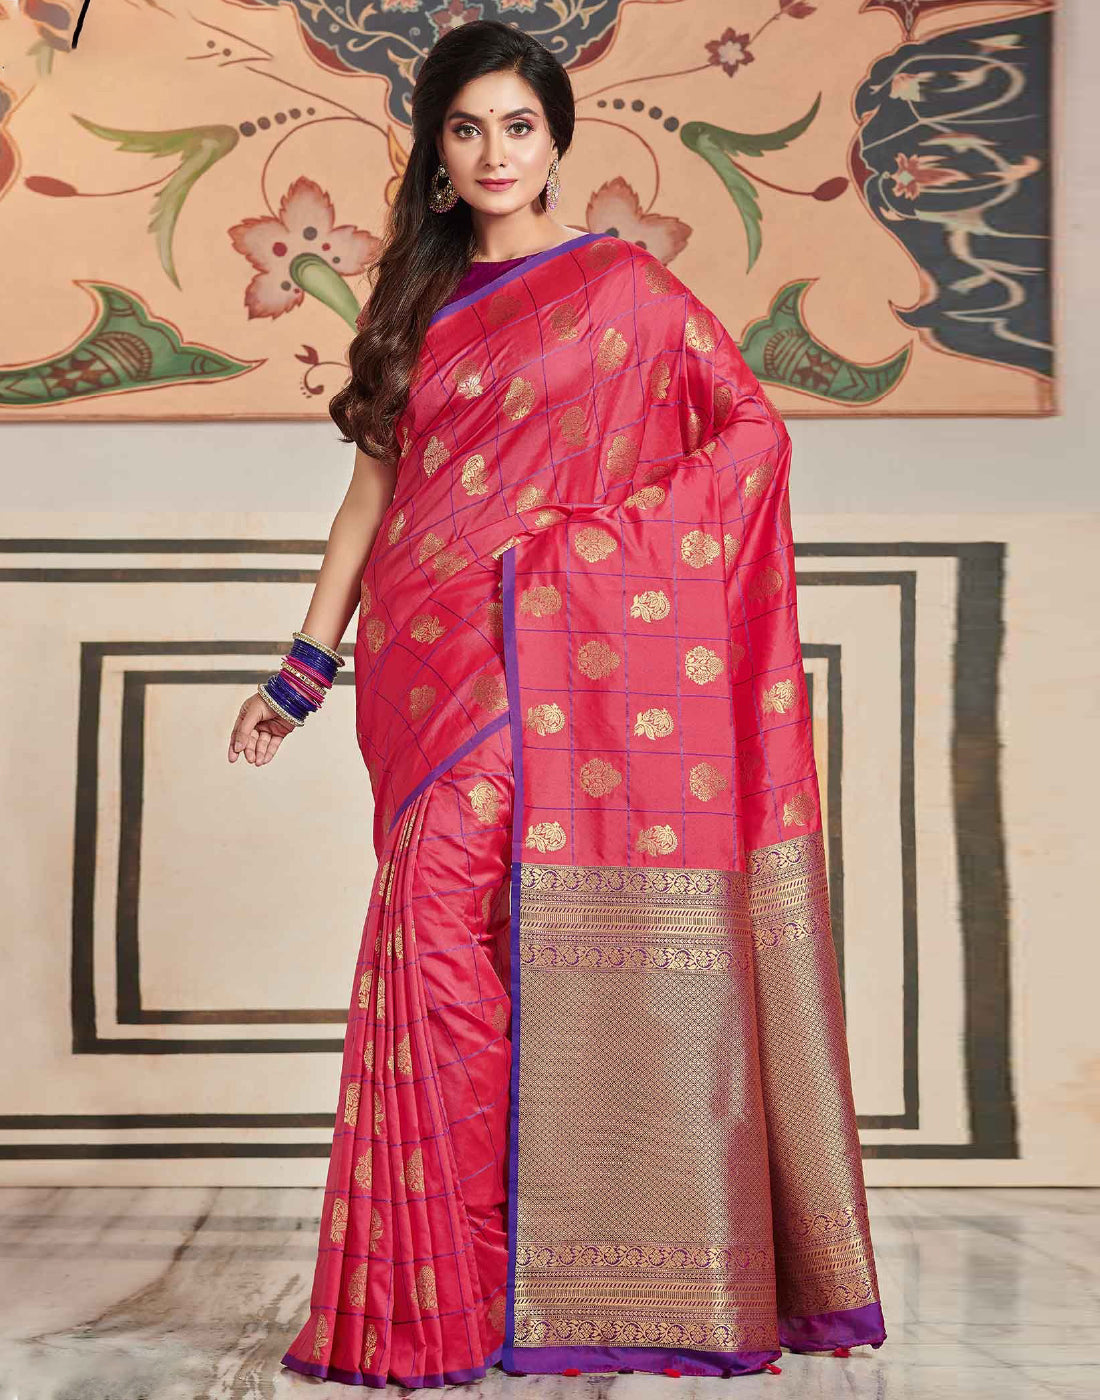 Exclusive Kanchi Soft Silk Checks Pink Saree With Contrast Purple Blouse